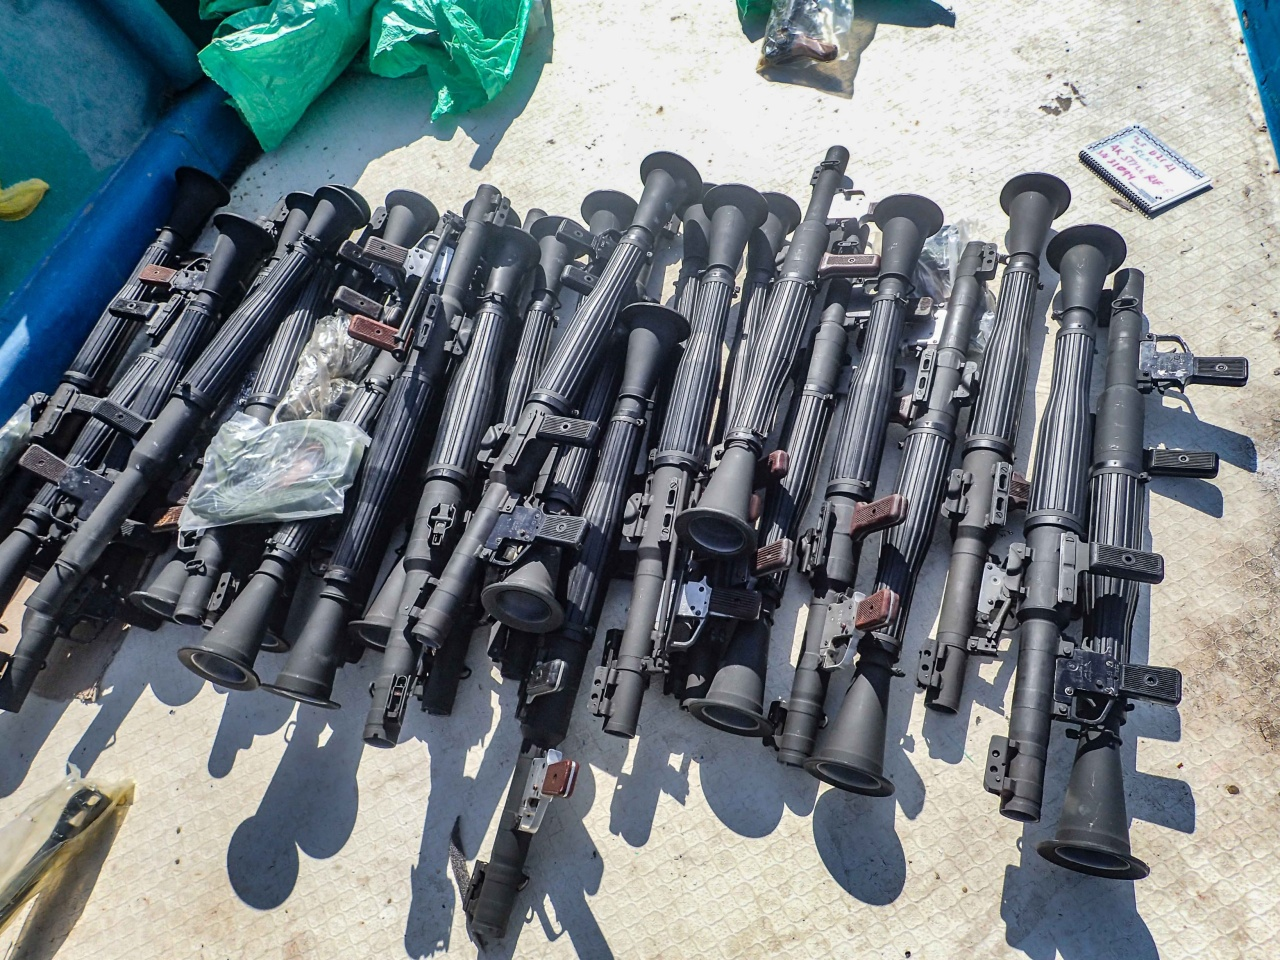 USS Winston S. Churchill Seized Weapons - Naval Post